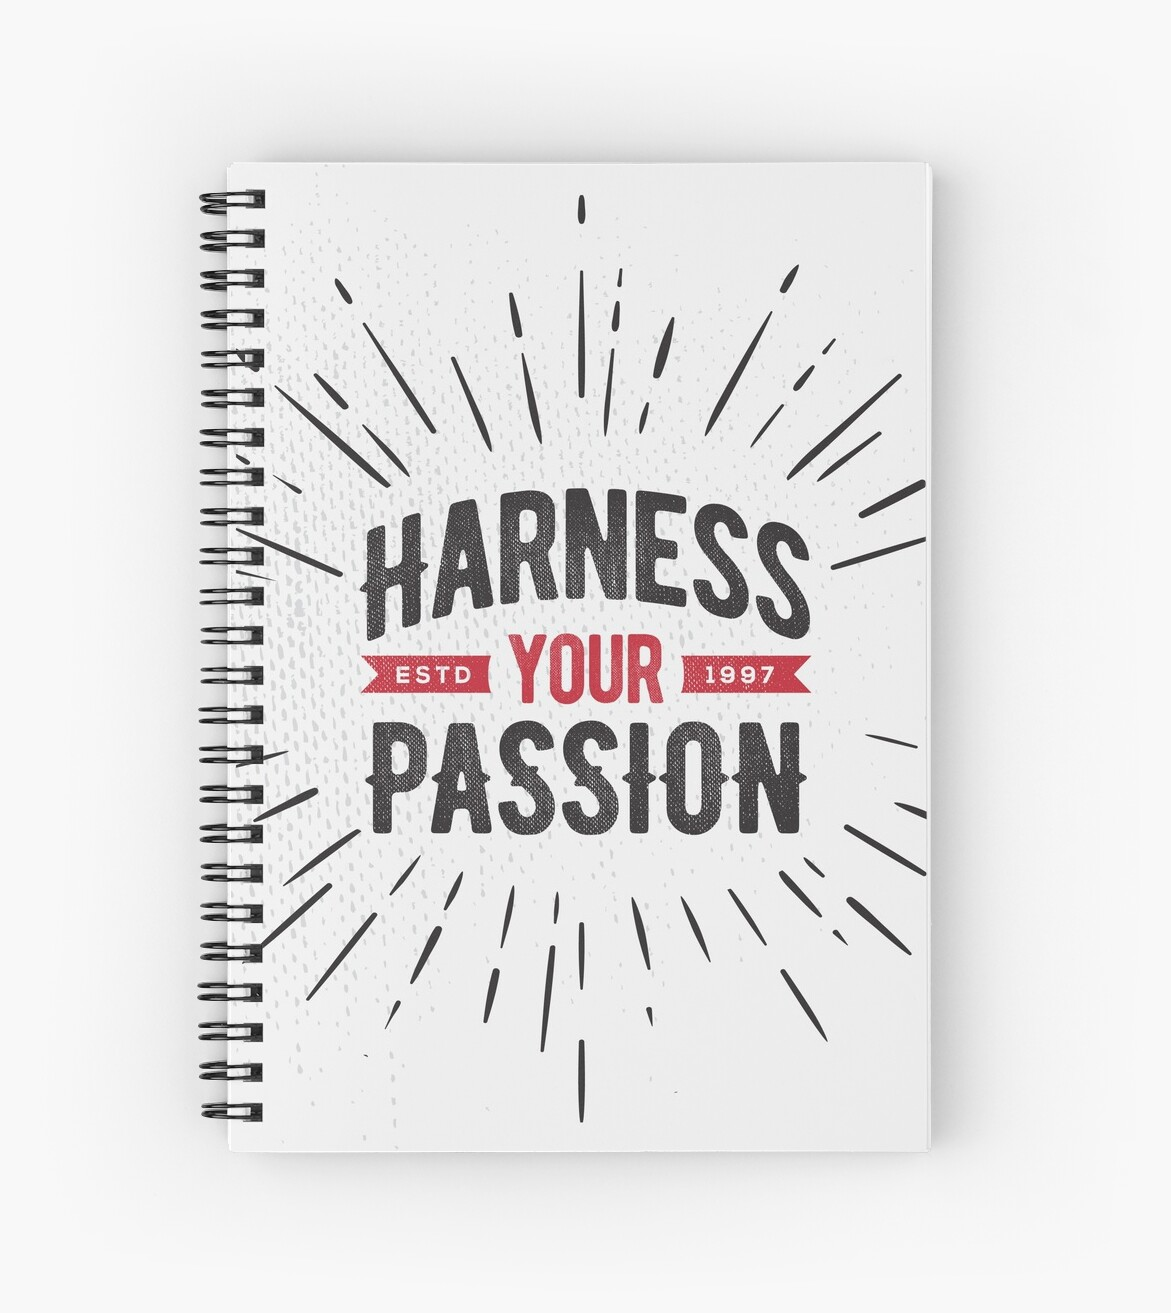 Harness Your Passion by traumfaenger